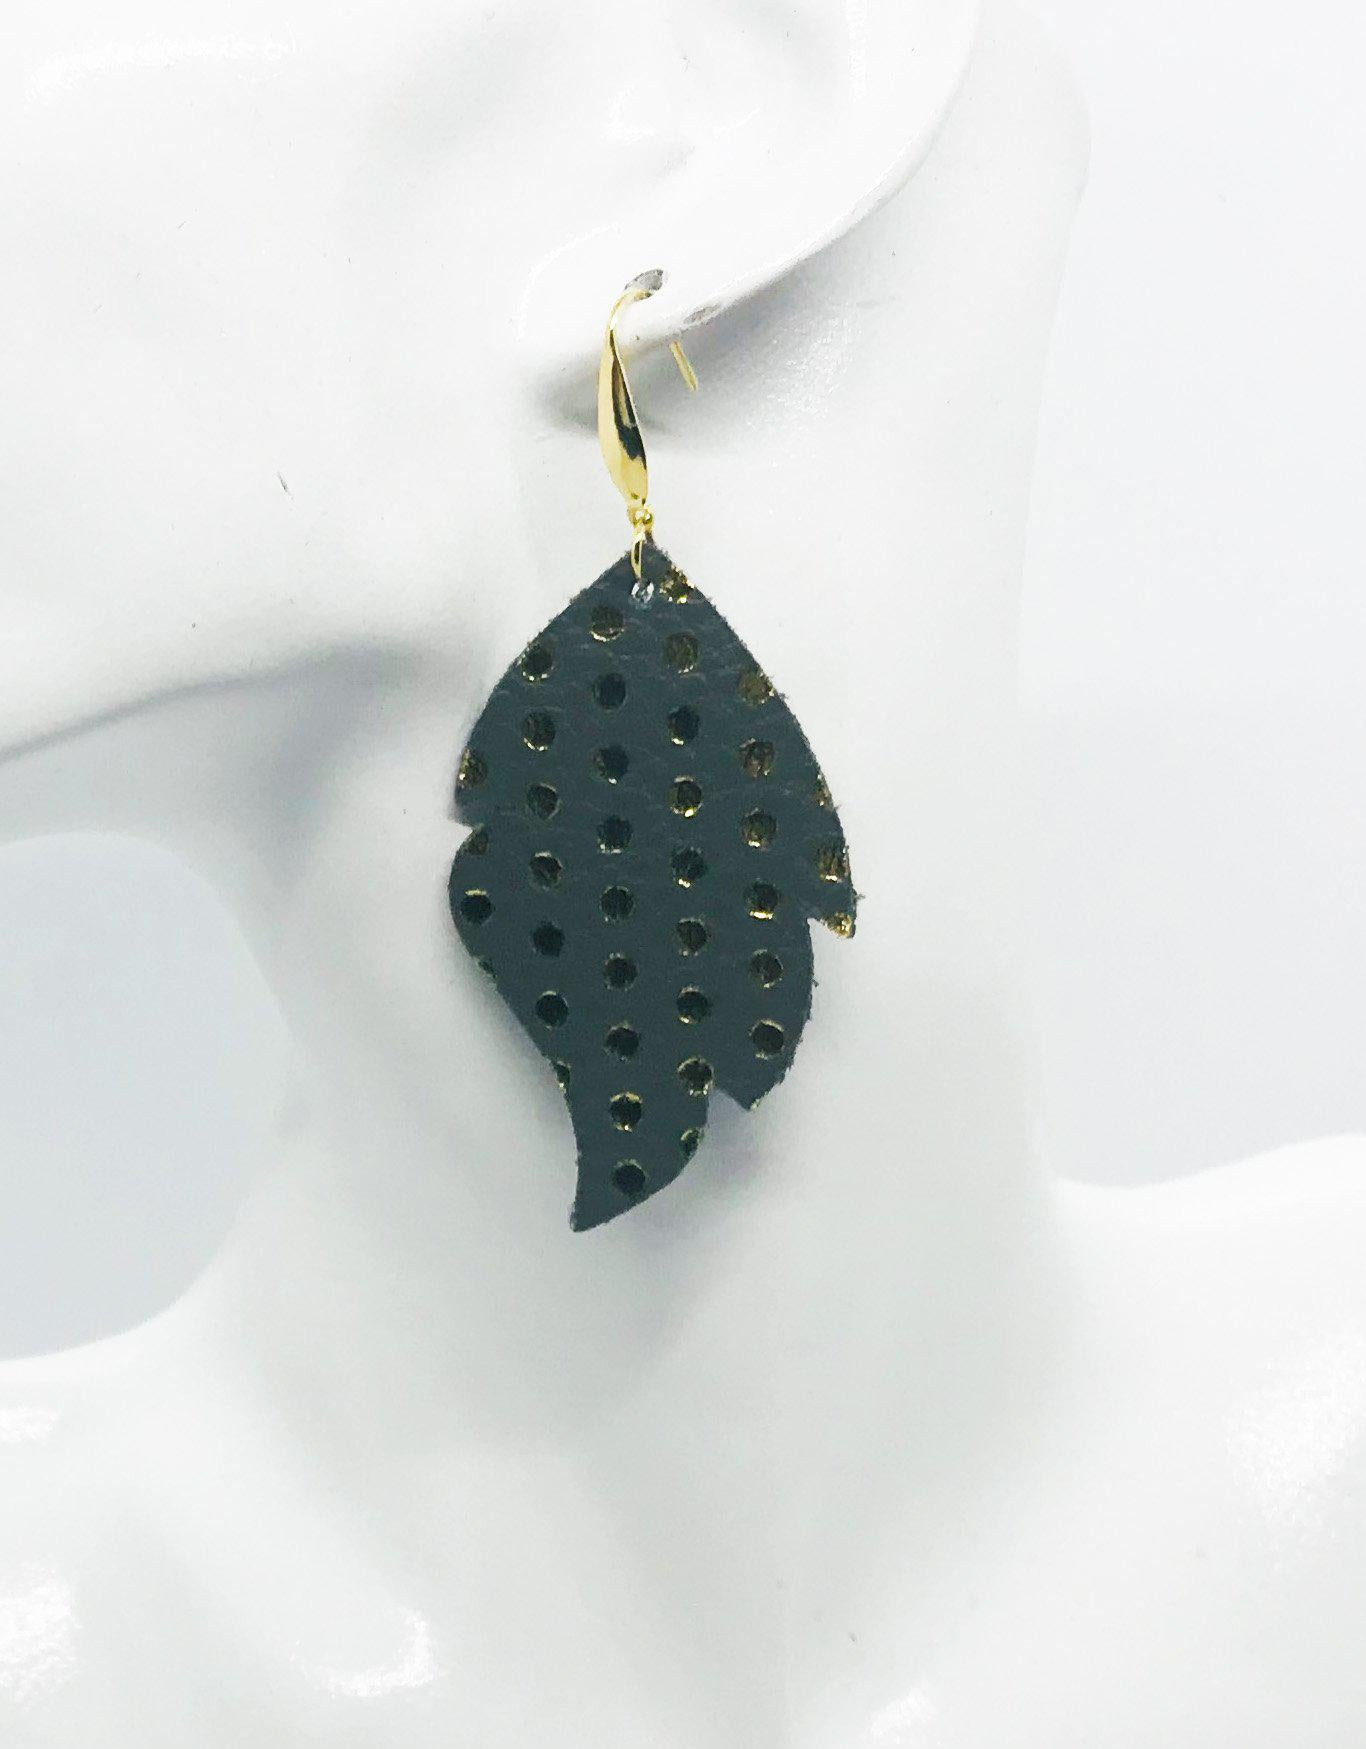 Metallic Grey and Gold Polka Dot Leather Earrings - E19-937